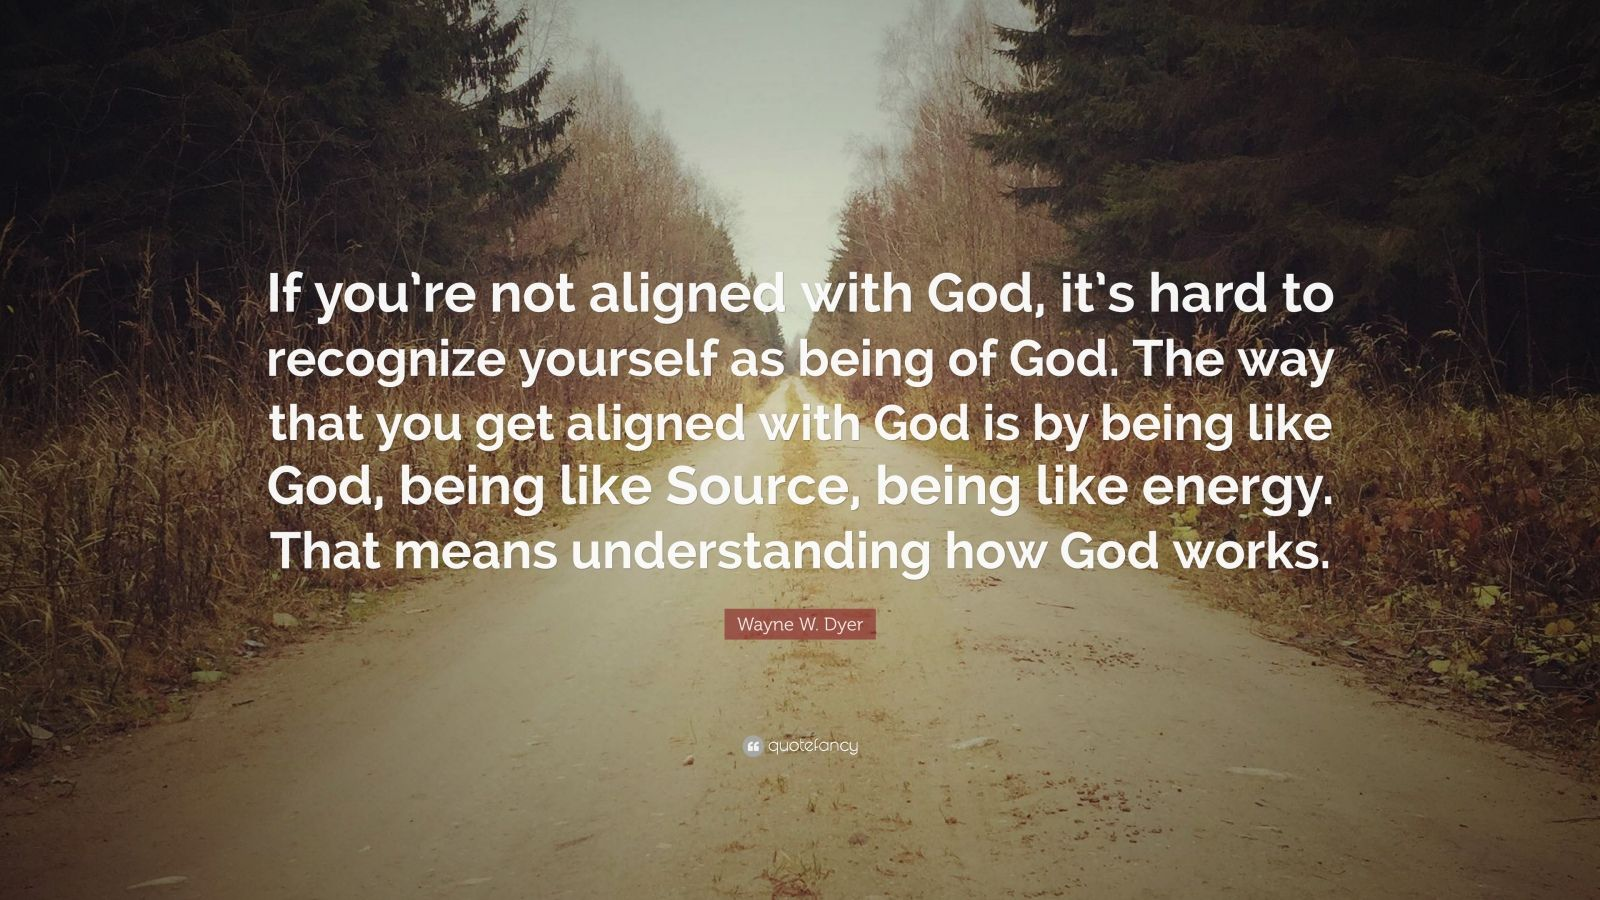 """Wayne W. Dyer Quote: """"If you're not aligned with God, it's hard to recognize yourself as being of God. The way that you get aligned with God is by being like God, being like Source, being like energy. That means understanding how God works."""""""